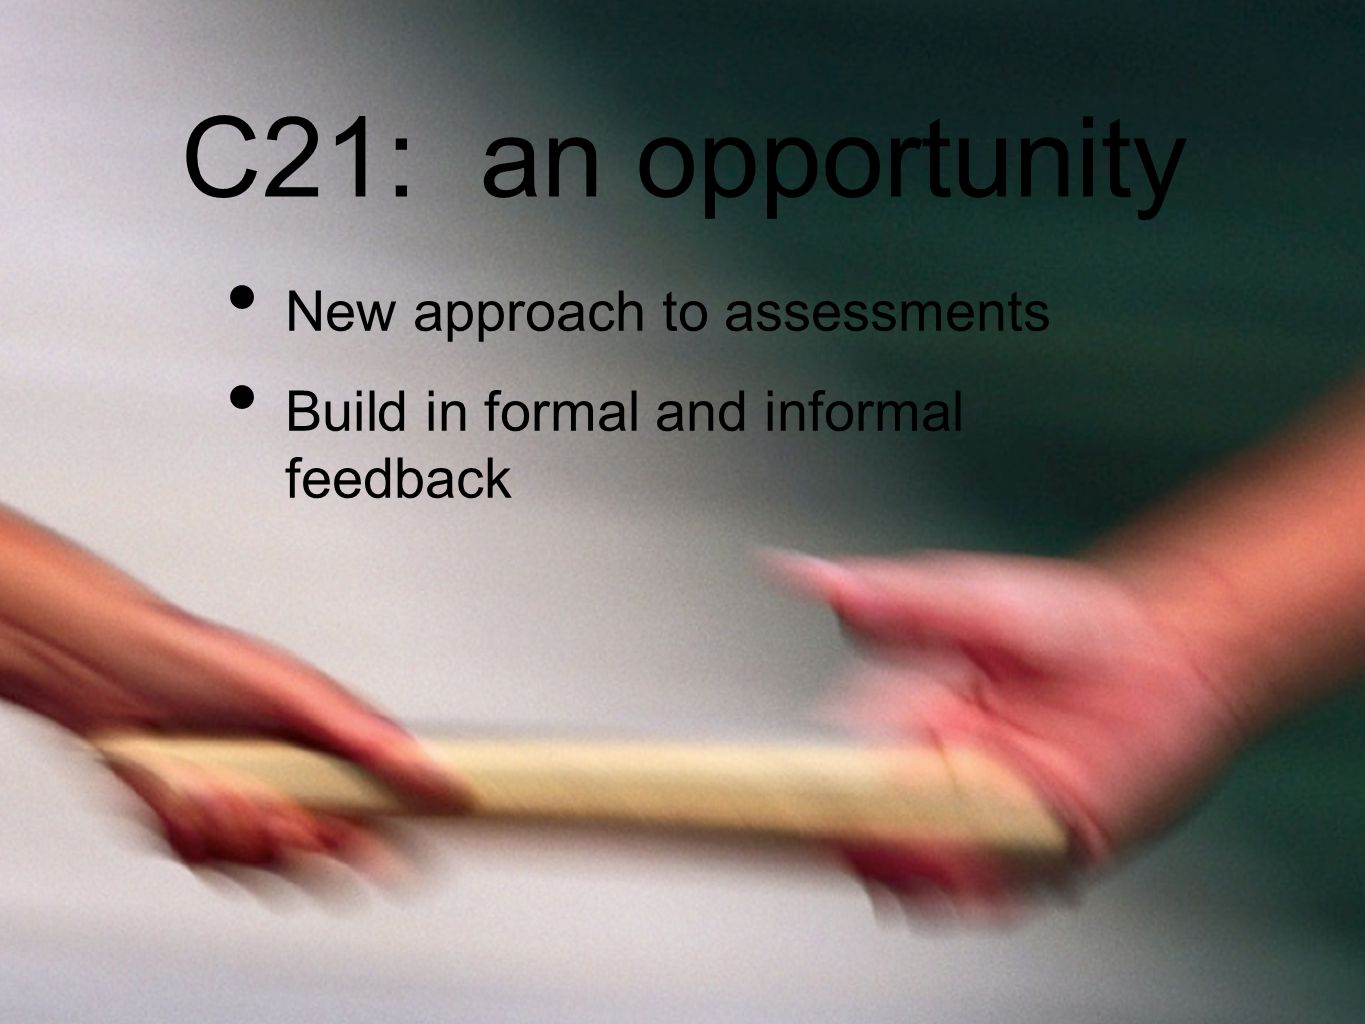 C21: an opportunity New approach to assessments Build in formal and informal feedback